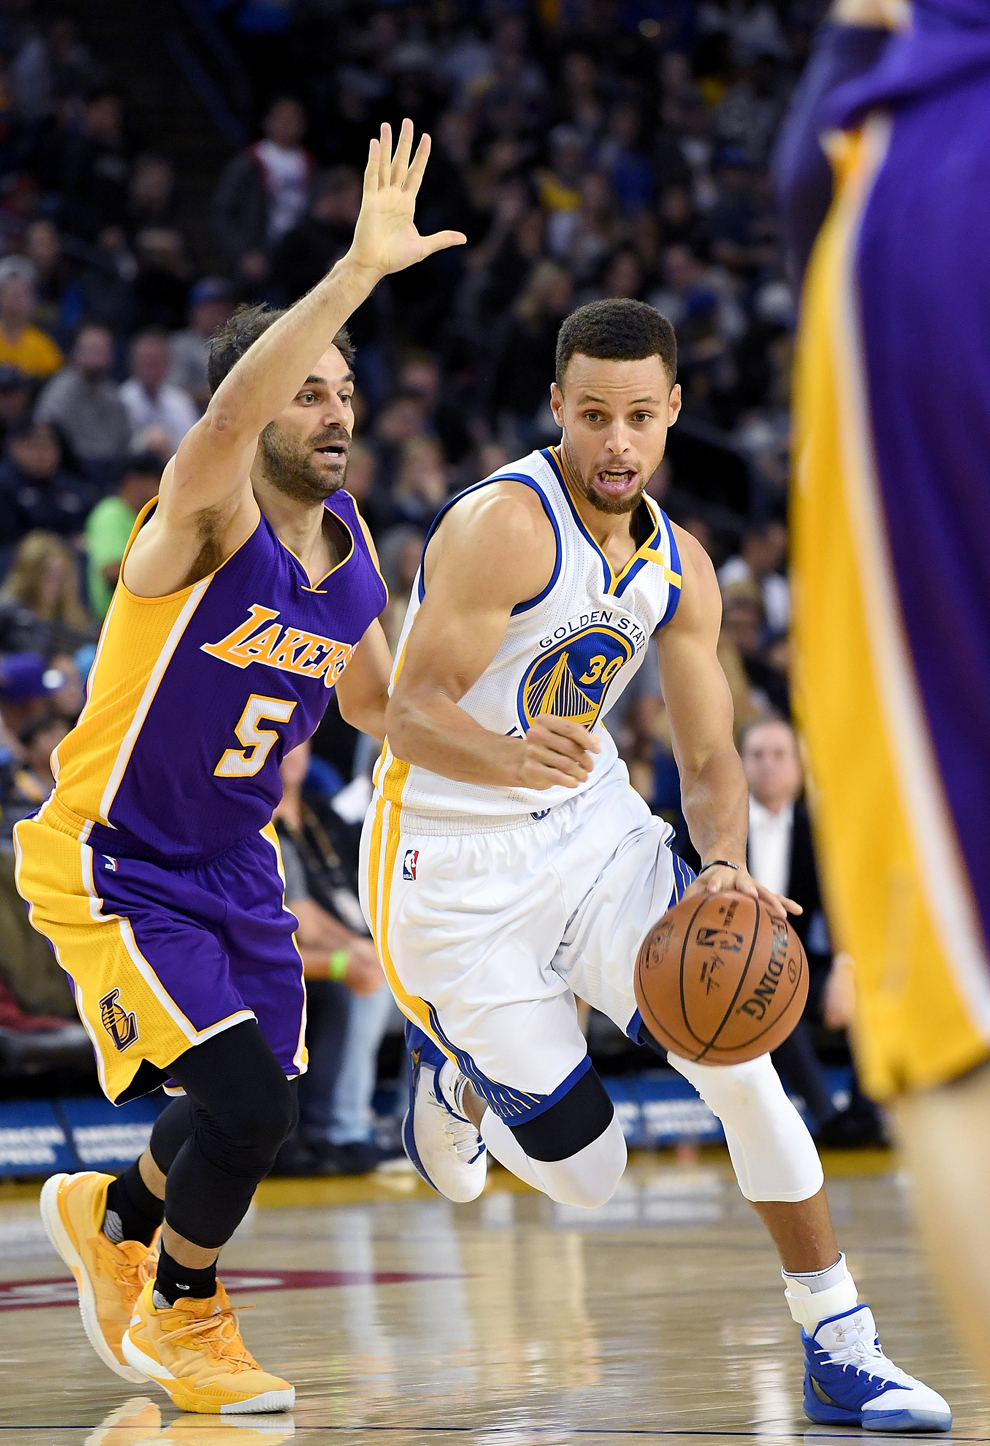 Stephen Curry (Warriors) defendido por José Manuel Calderón (Lakers)